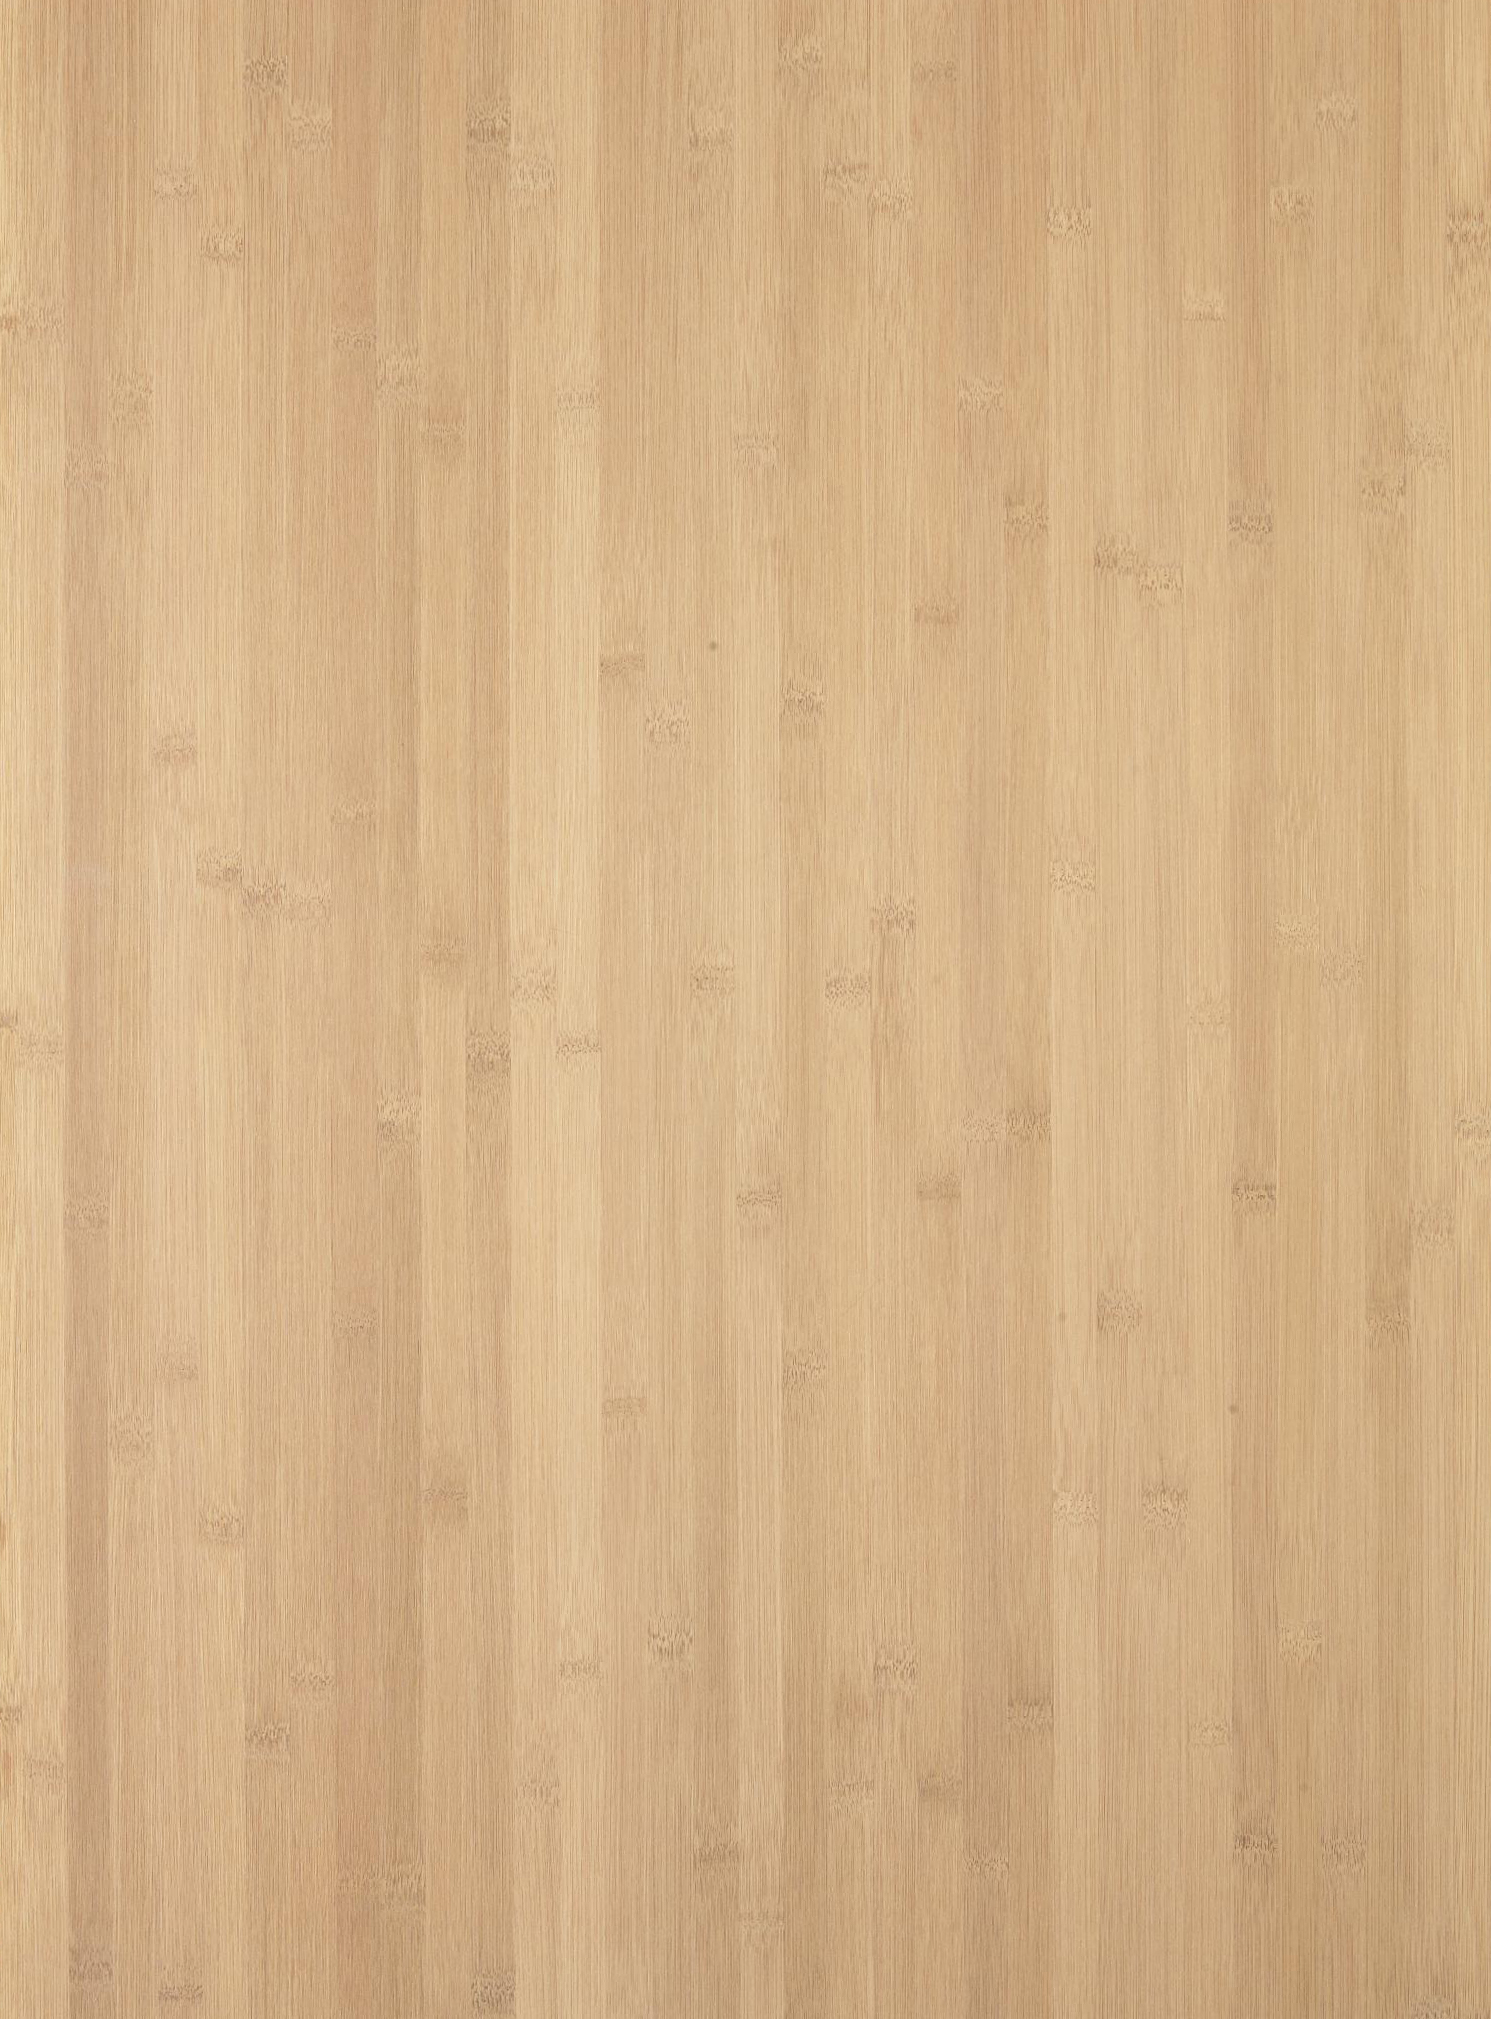 Click here to download bamboo wood grain pattern 1 677 kb